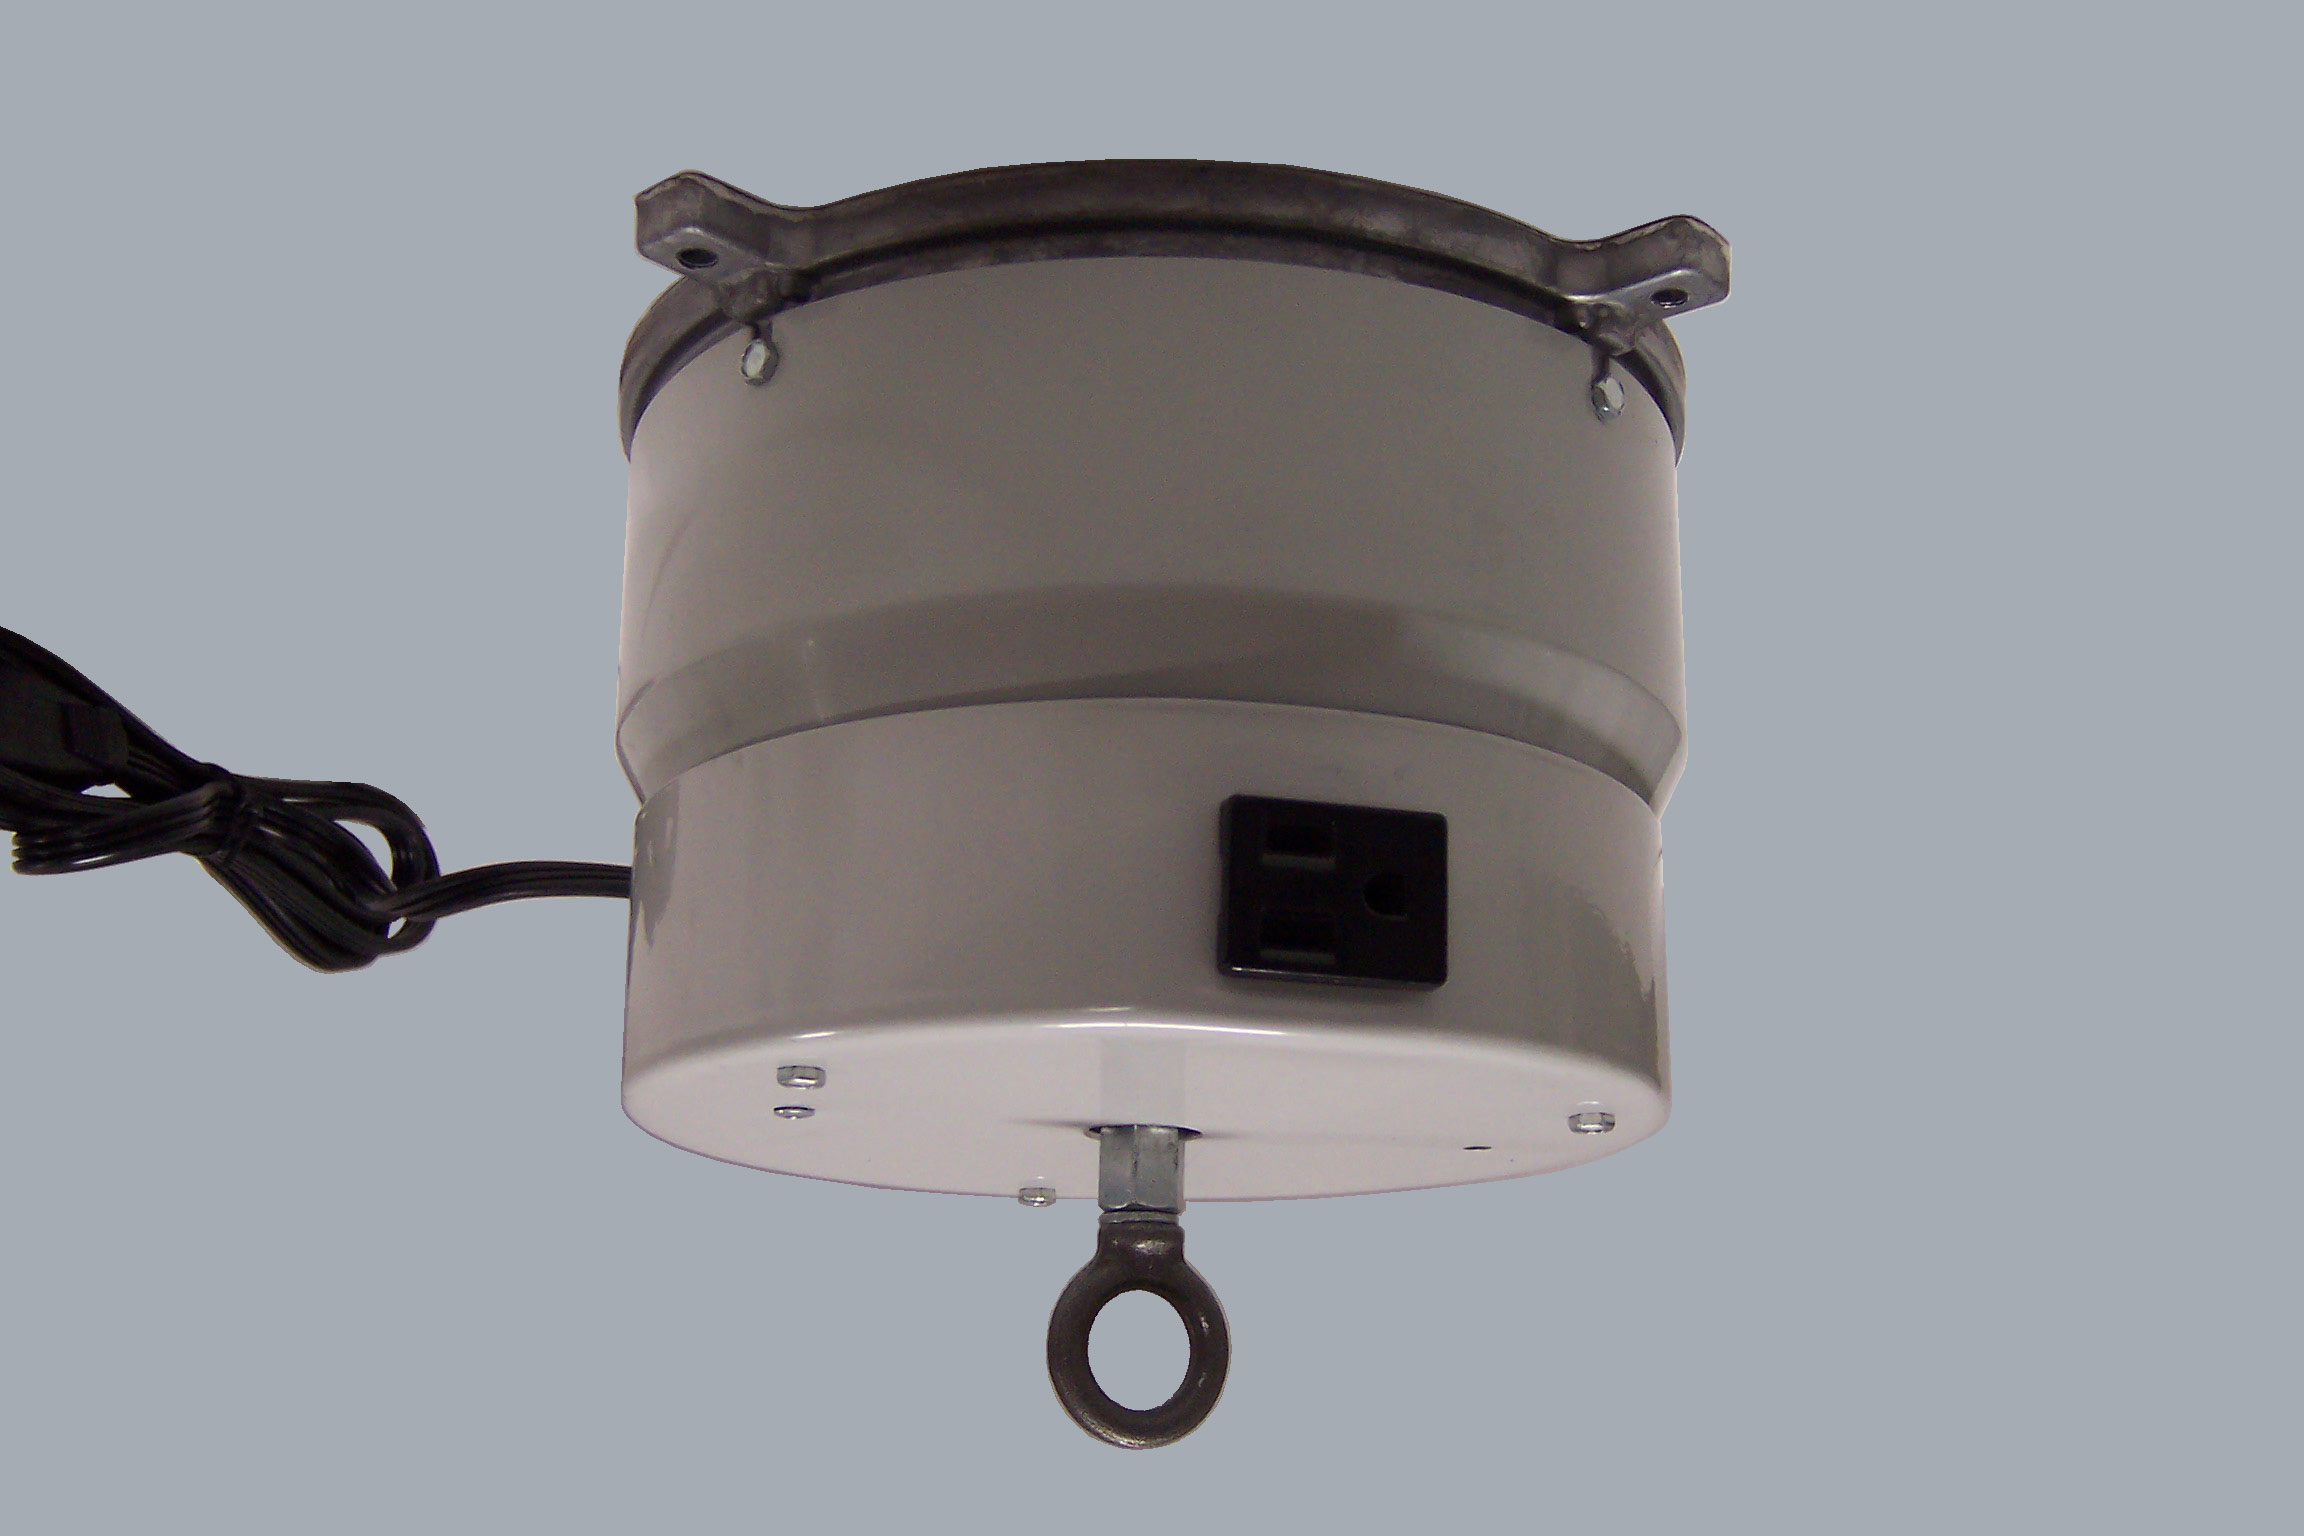 Ceiling Mount Turntable 120E